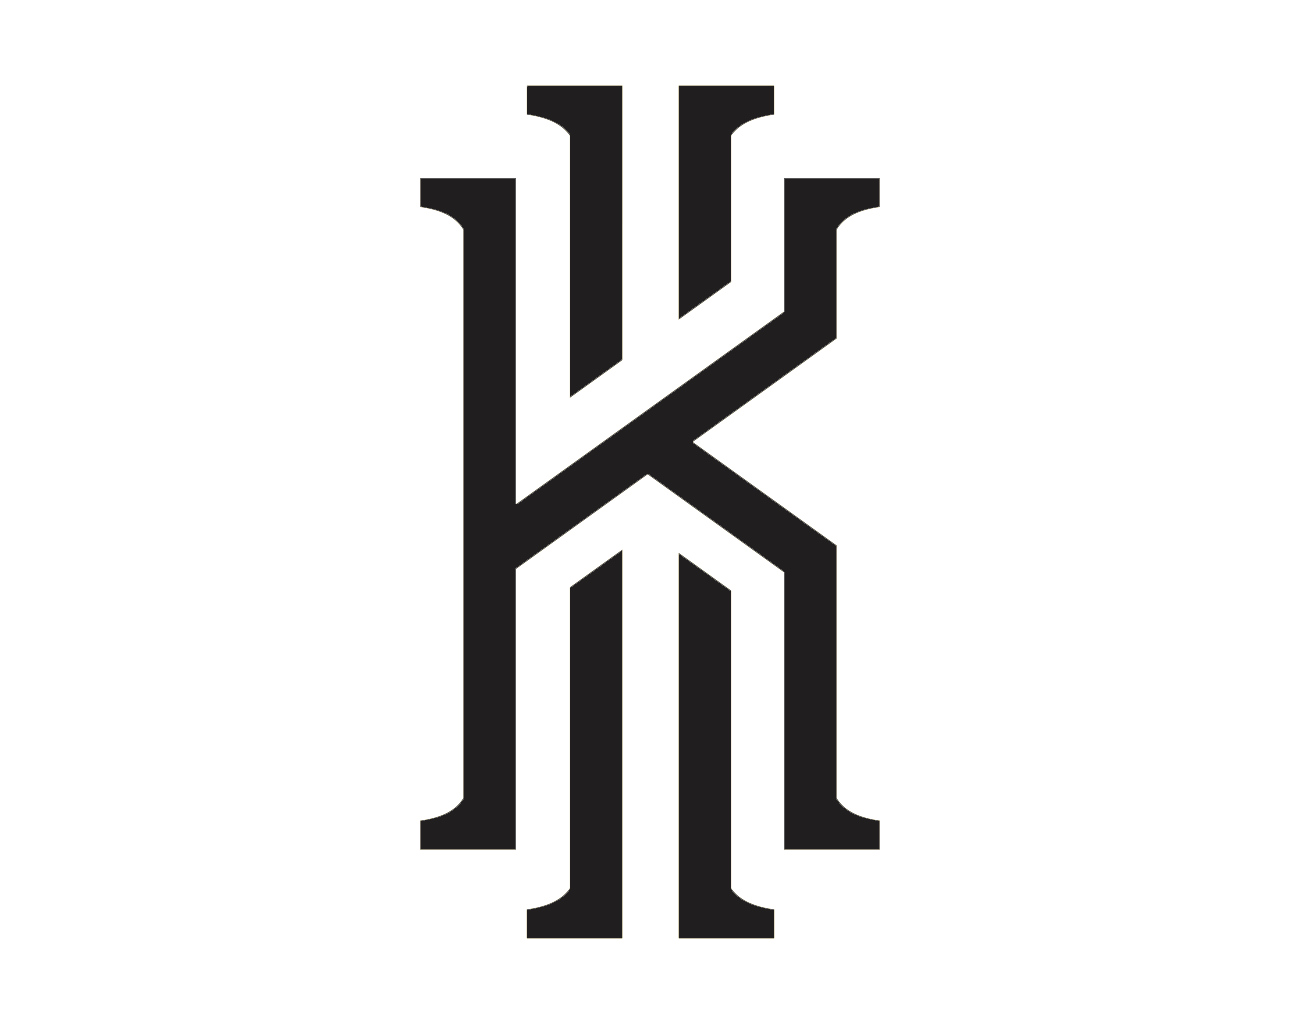 kyrie irving logo kyrie irving symbol meaning history and evolution rh 1000logos net lebron james logs lebron james loser